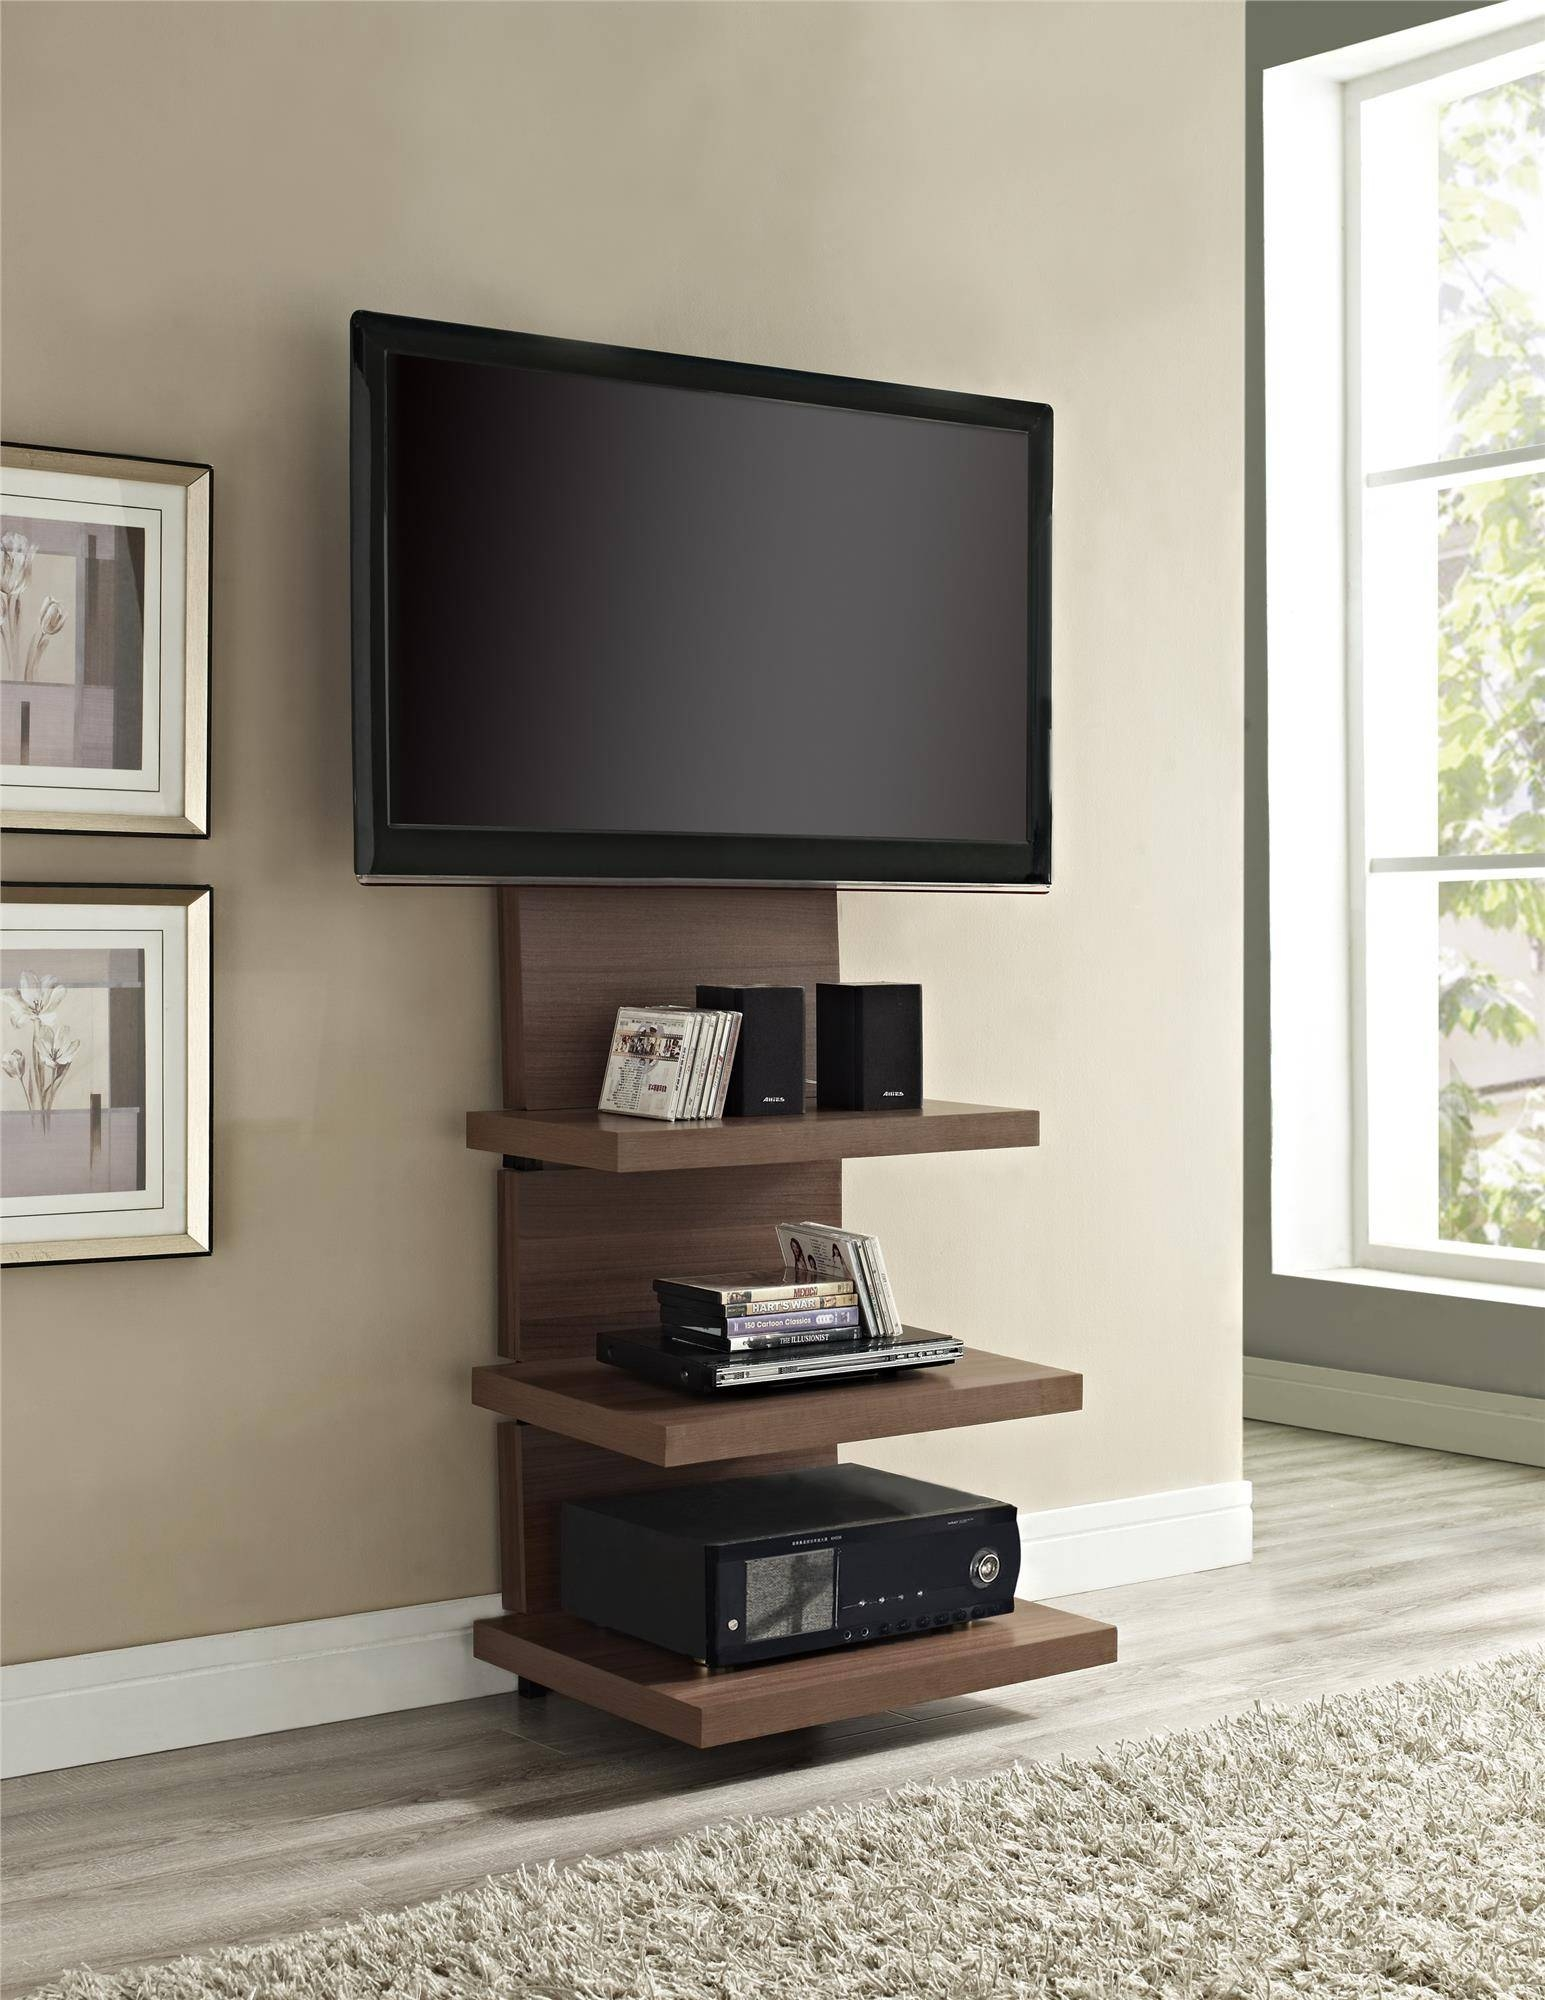 Cool Custom Modern Vertical Wood Tv Stands With Floating Display throughout Cool Tv Stands (Image 7 of 15)